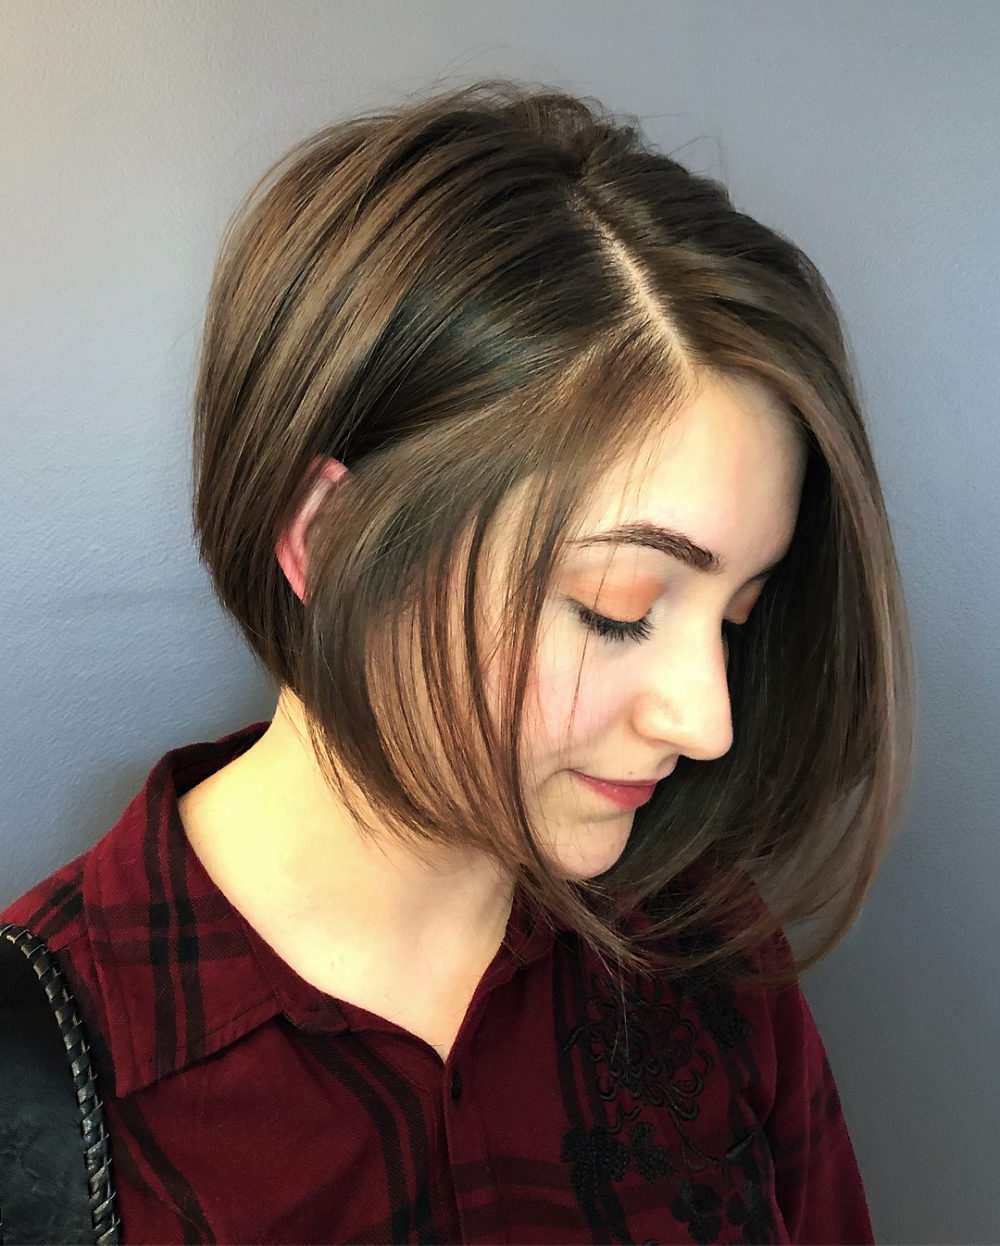 33 Flattering Short Hairstyles For Round Faces In 2018 intended for Short Hairstyles For Chubby Face